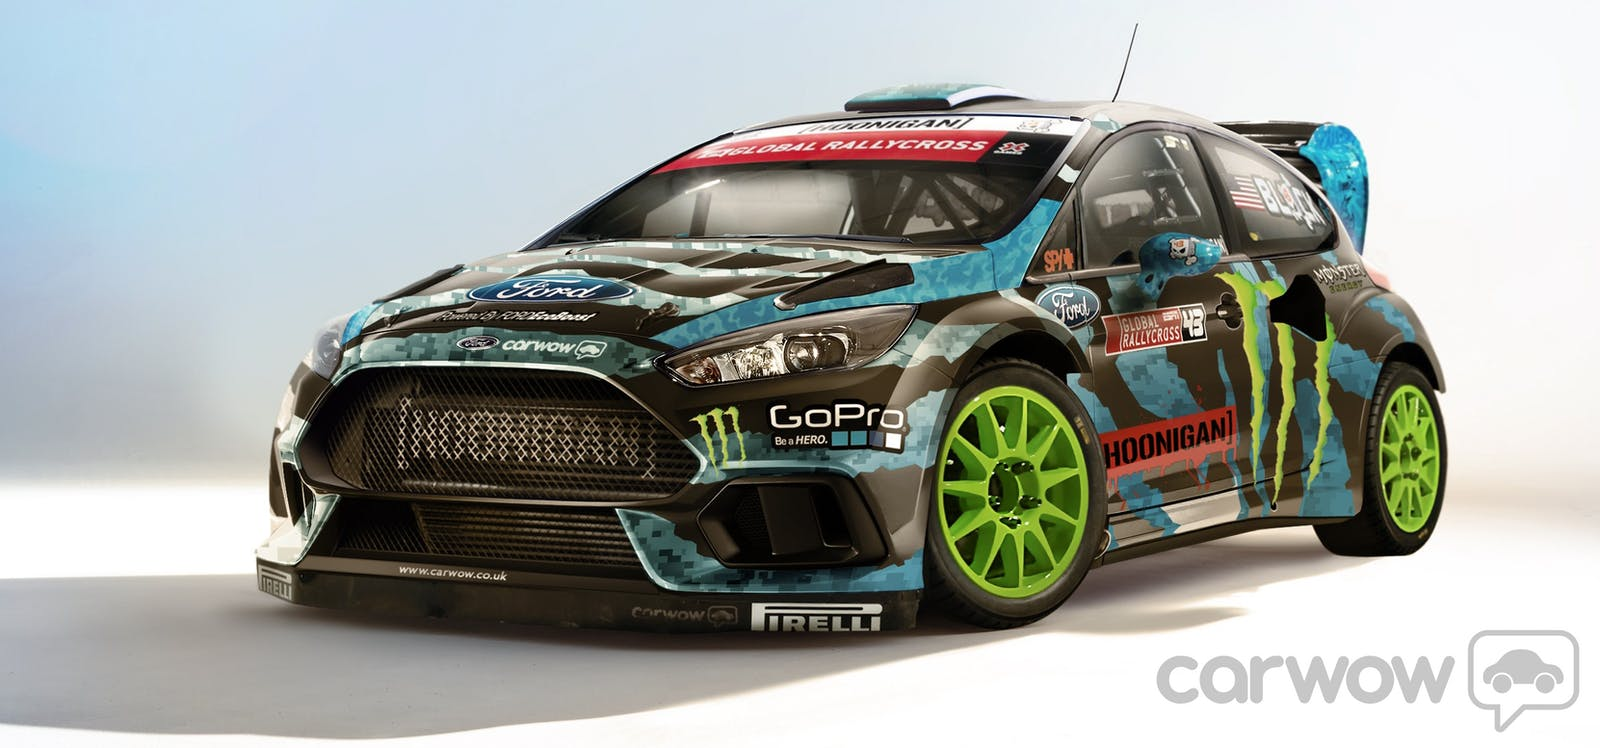 2015 ken block ford focus rs gymkhana imagined by carwow carwow. Black Bedroom Furniture Sets. Home Design Ideas